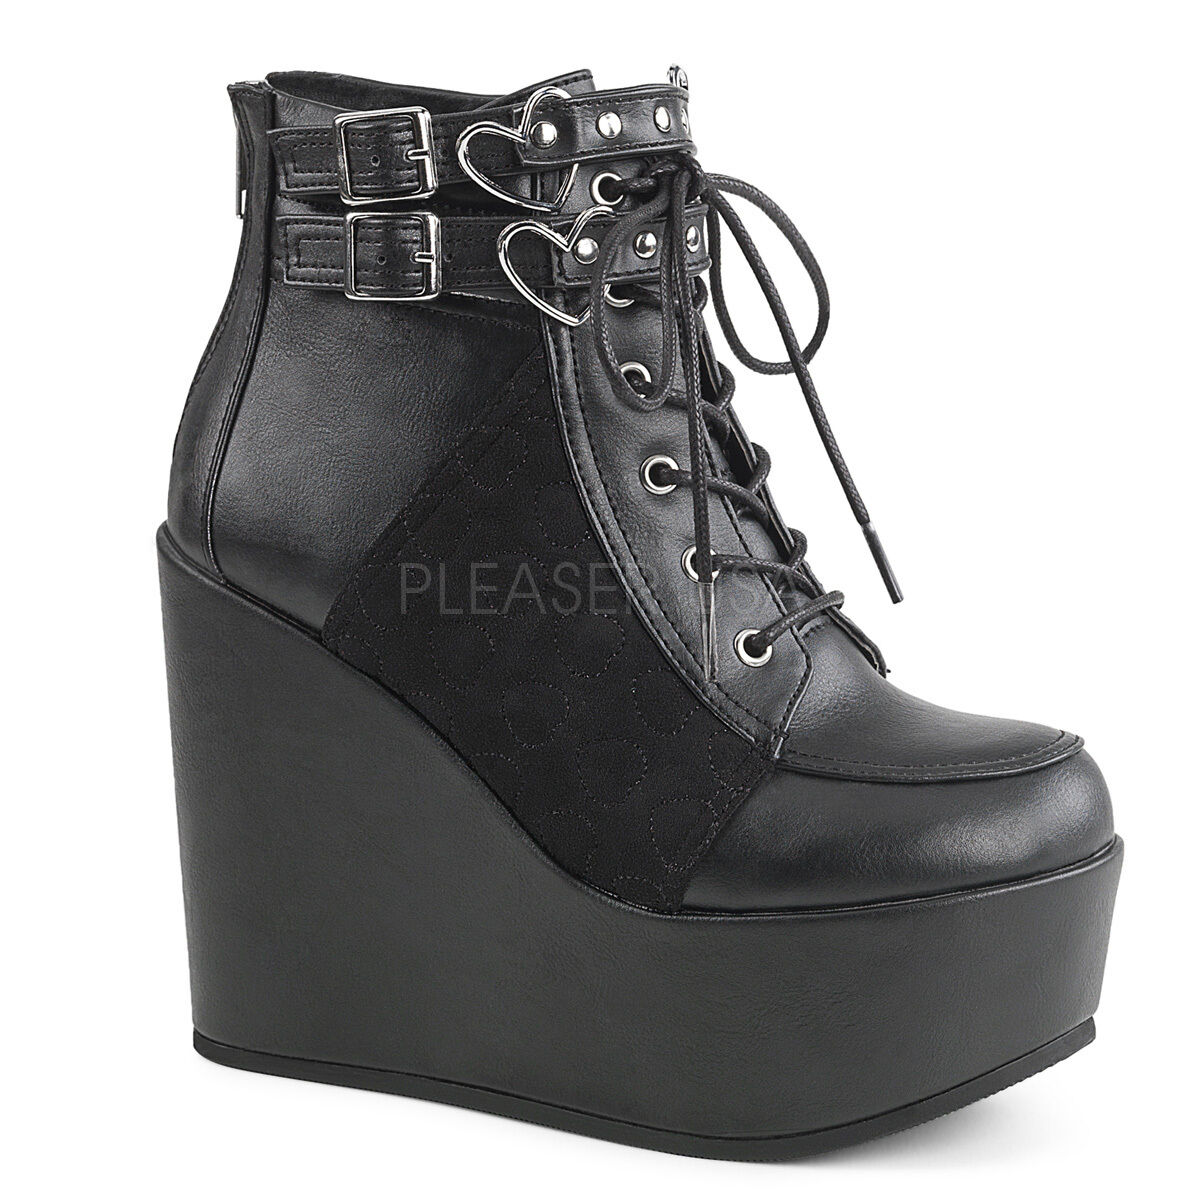 Demonia 5  Heel Wedge Platform Studded Strap Heart Buckle Boots Club Goth 6-12